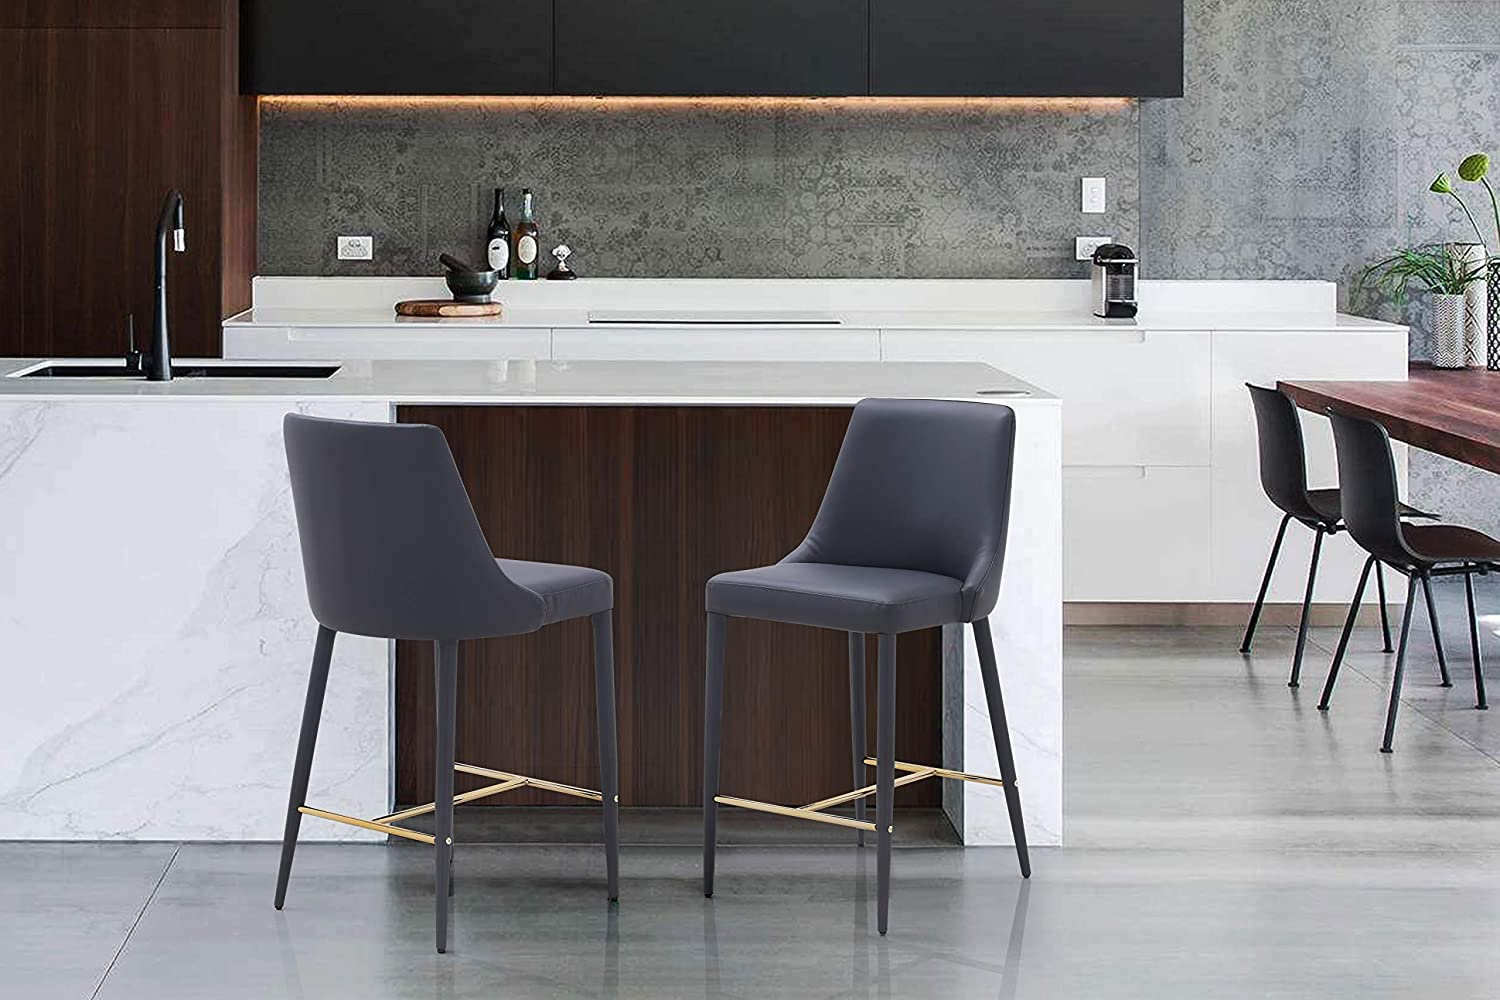 Iconic Home Arwen Counter Stool Chair PU Leather Upholstered Swoop Arm Seat Gold Tone I-Shaped Metal Base Wood Legs Modern Transitional, Grey